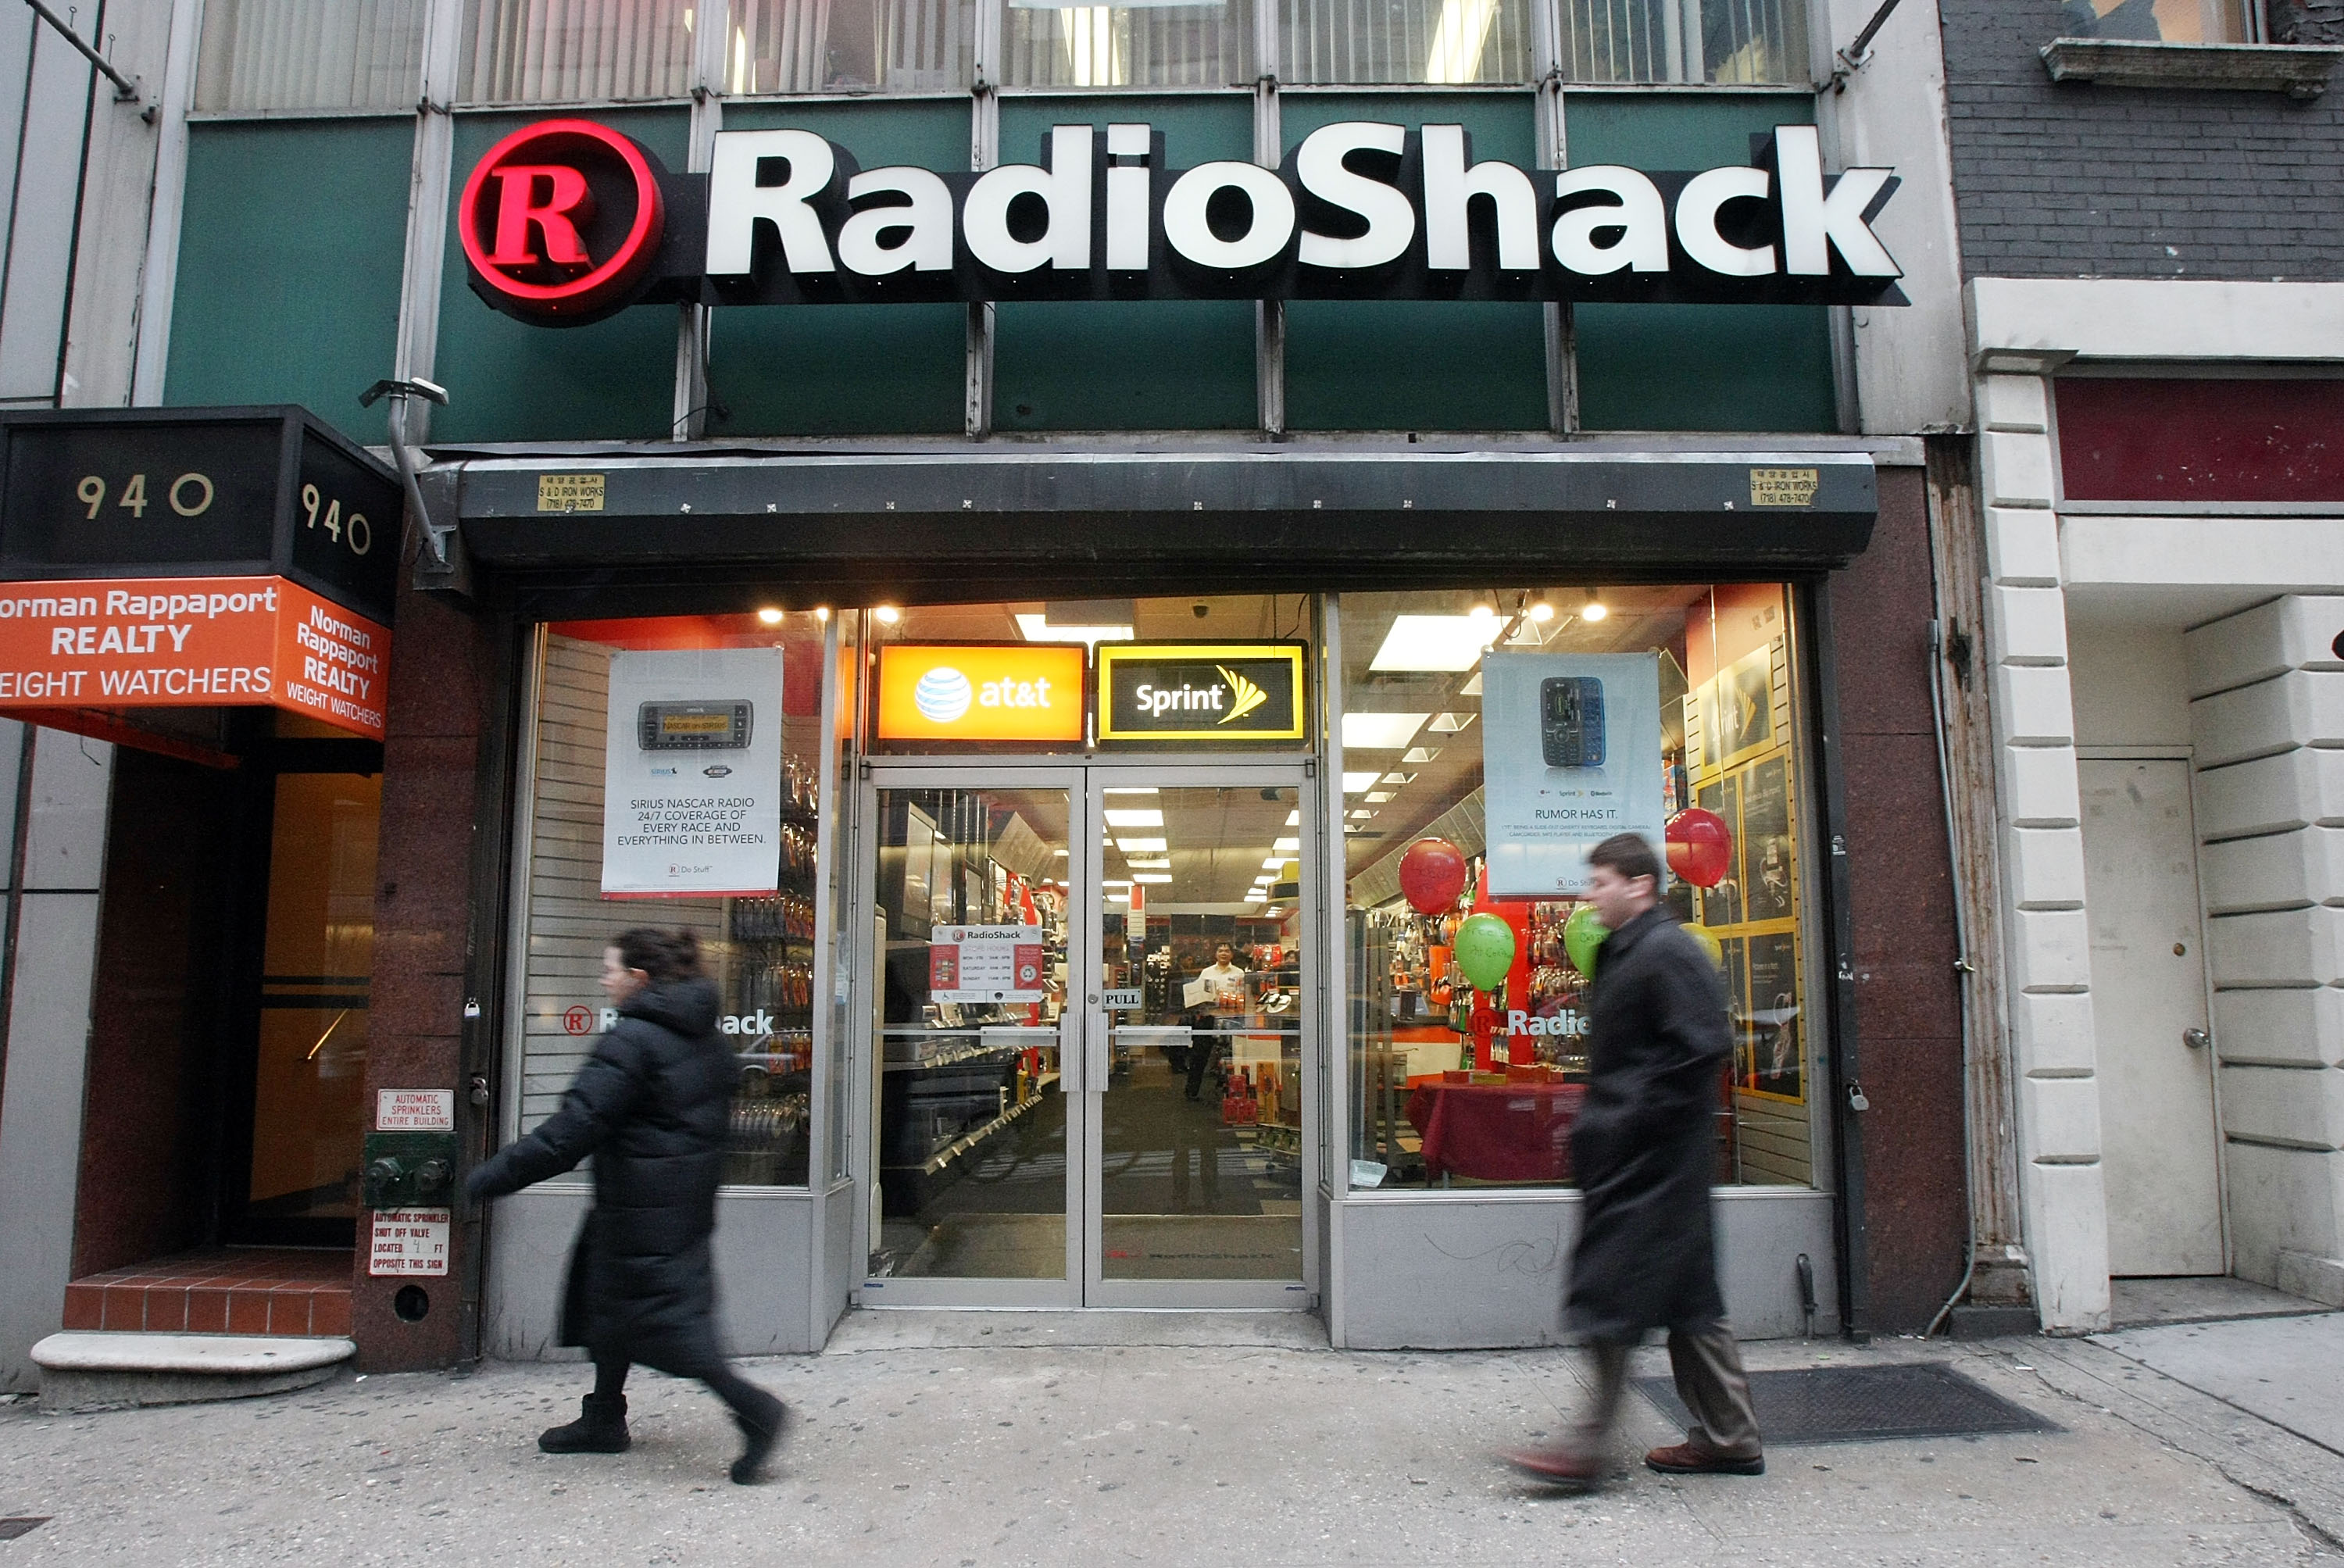 Radioshack Posts 19.5 Percent Increase In Fourth Quarter Profit